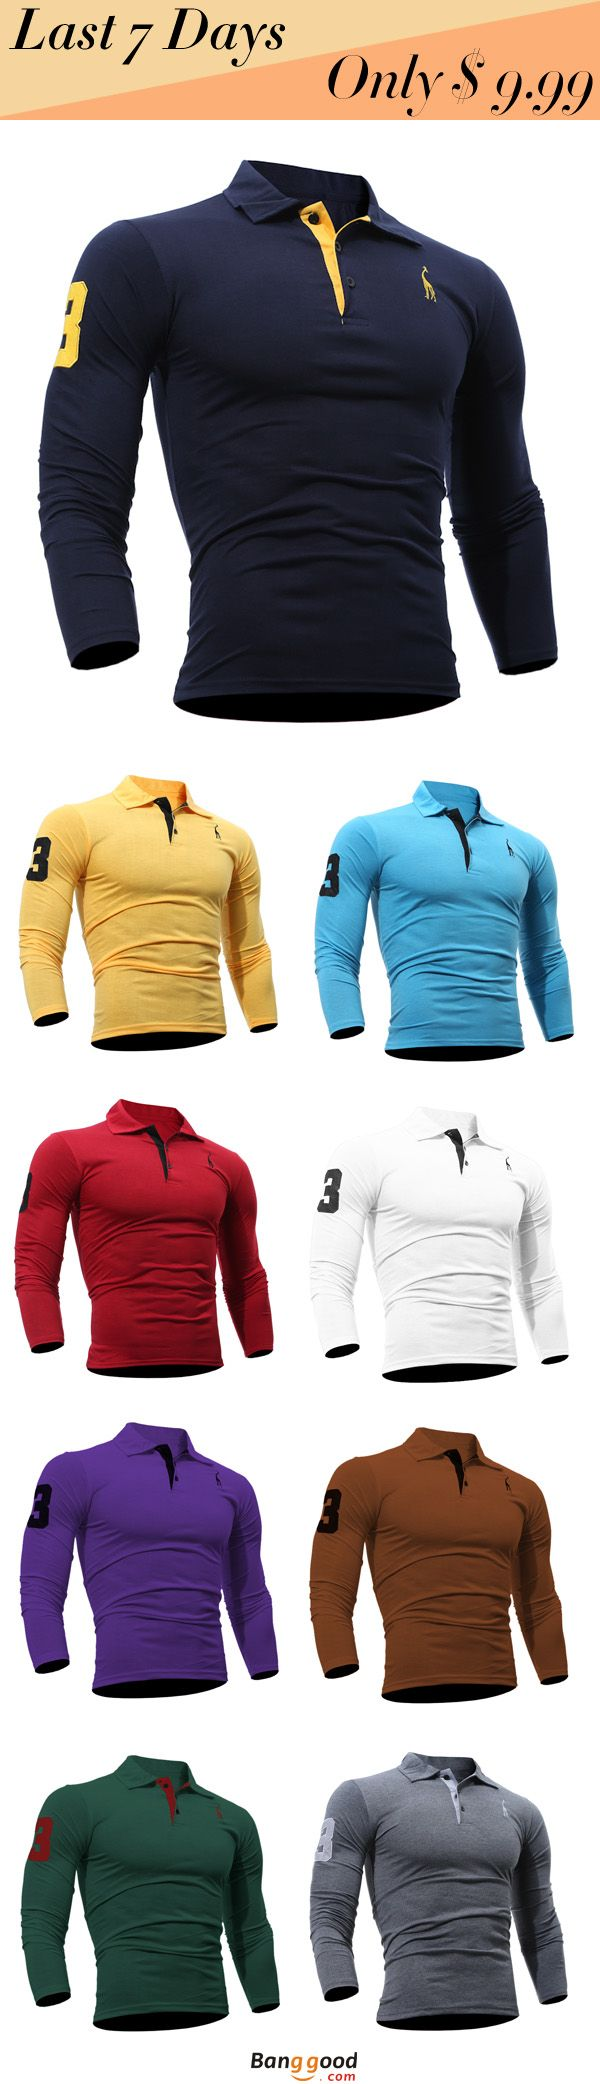 US$13.93 + Free Shipping. Fashion T-shirt, Embroidered T-shirt, Men's T-shirt, Casual T-shirt, Solid Color T-shirt, Slim Fit T-shirt, Long Sleeved T-shirt. 10 Colors to Pick. >>> To View Further, Visit Now.